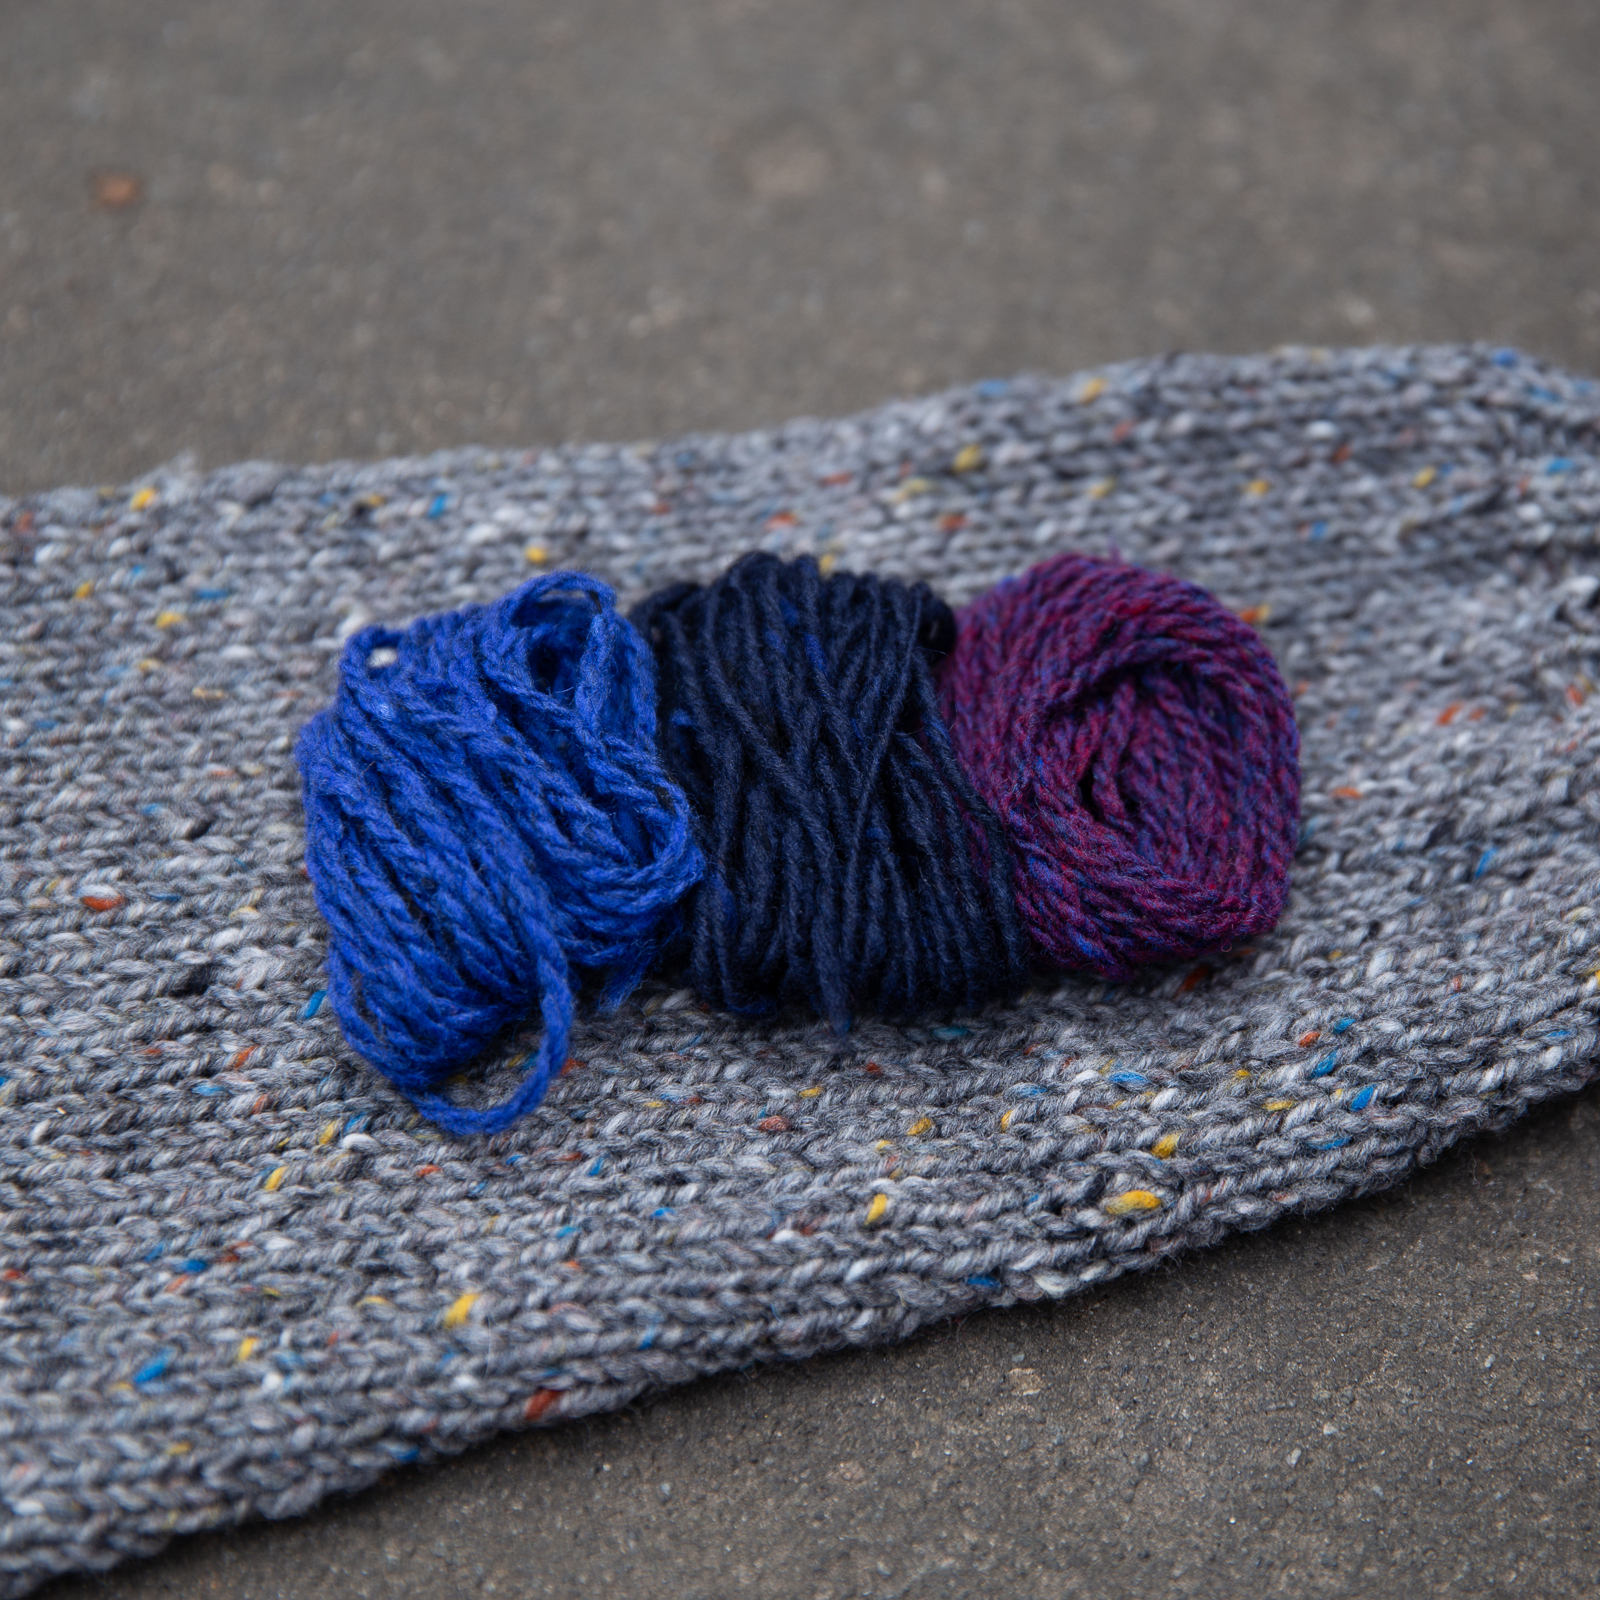 yarn palette of cobalt blue, navy blue, purple